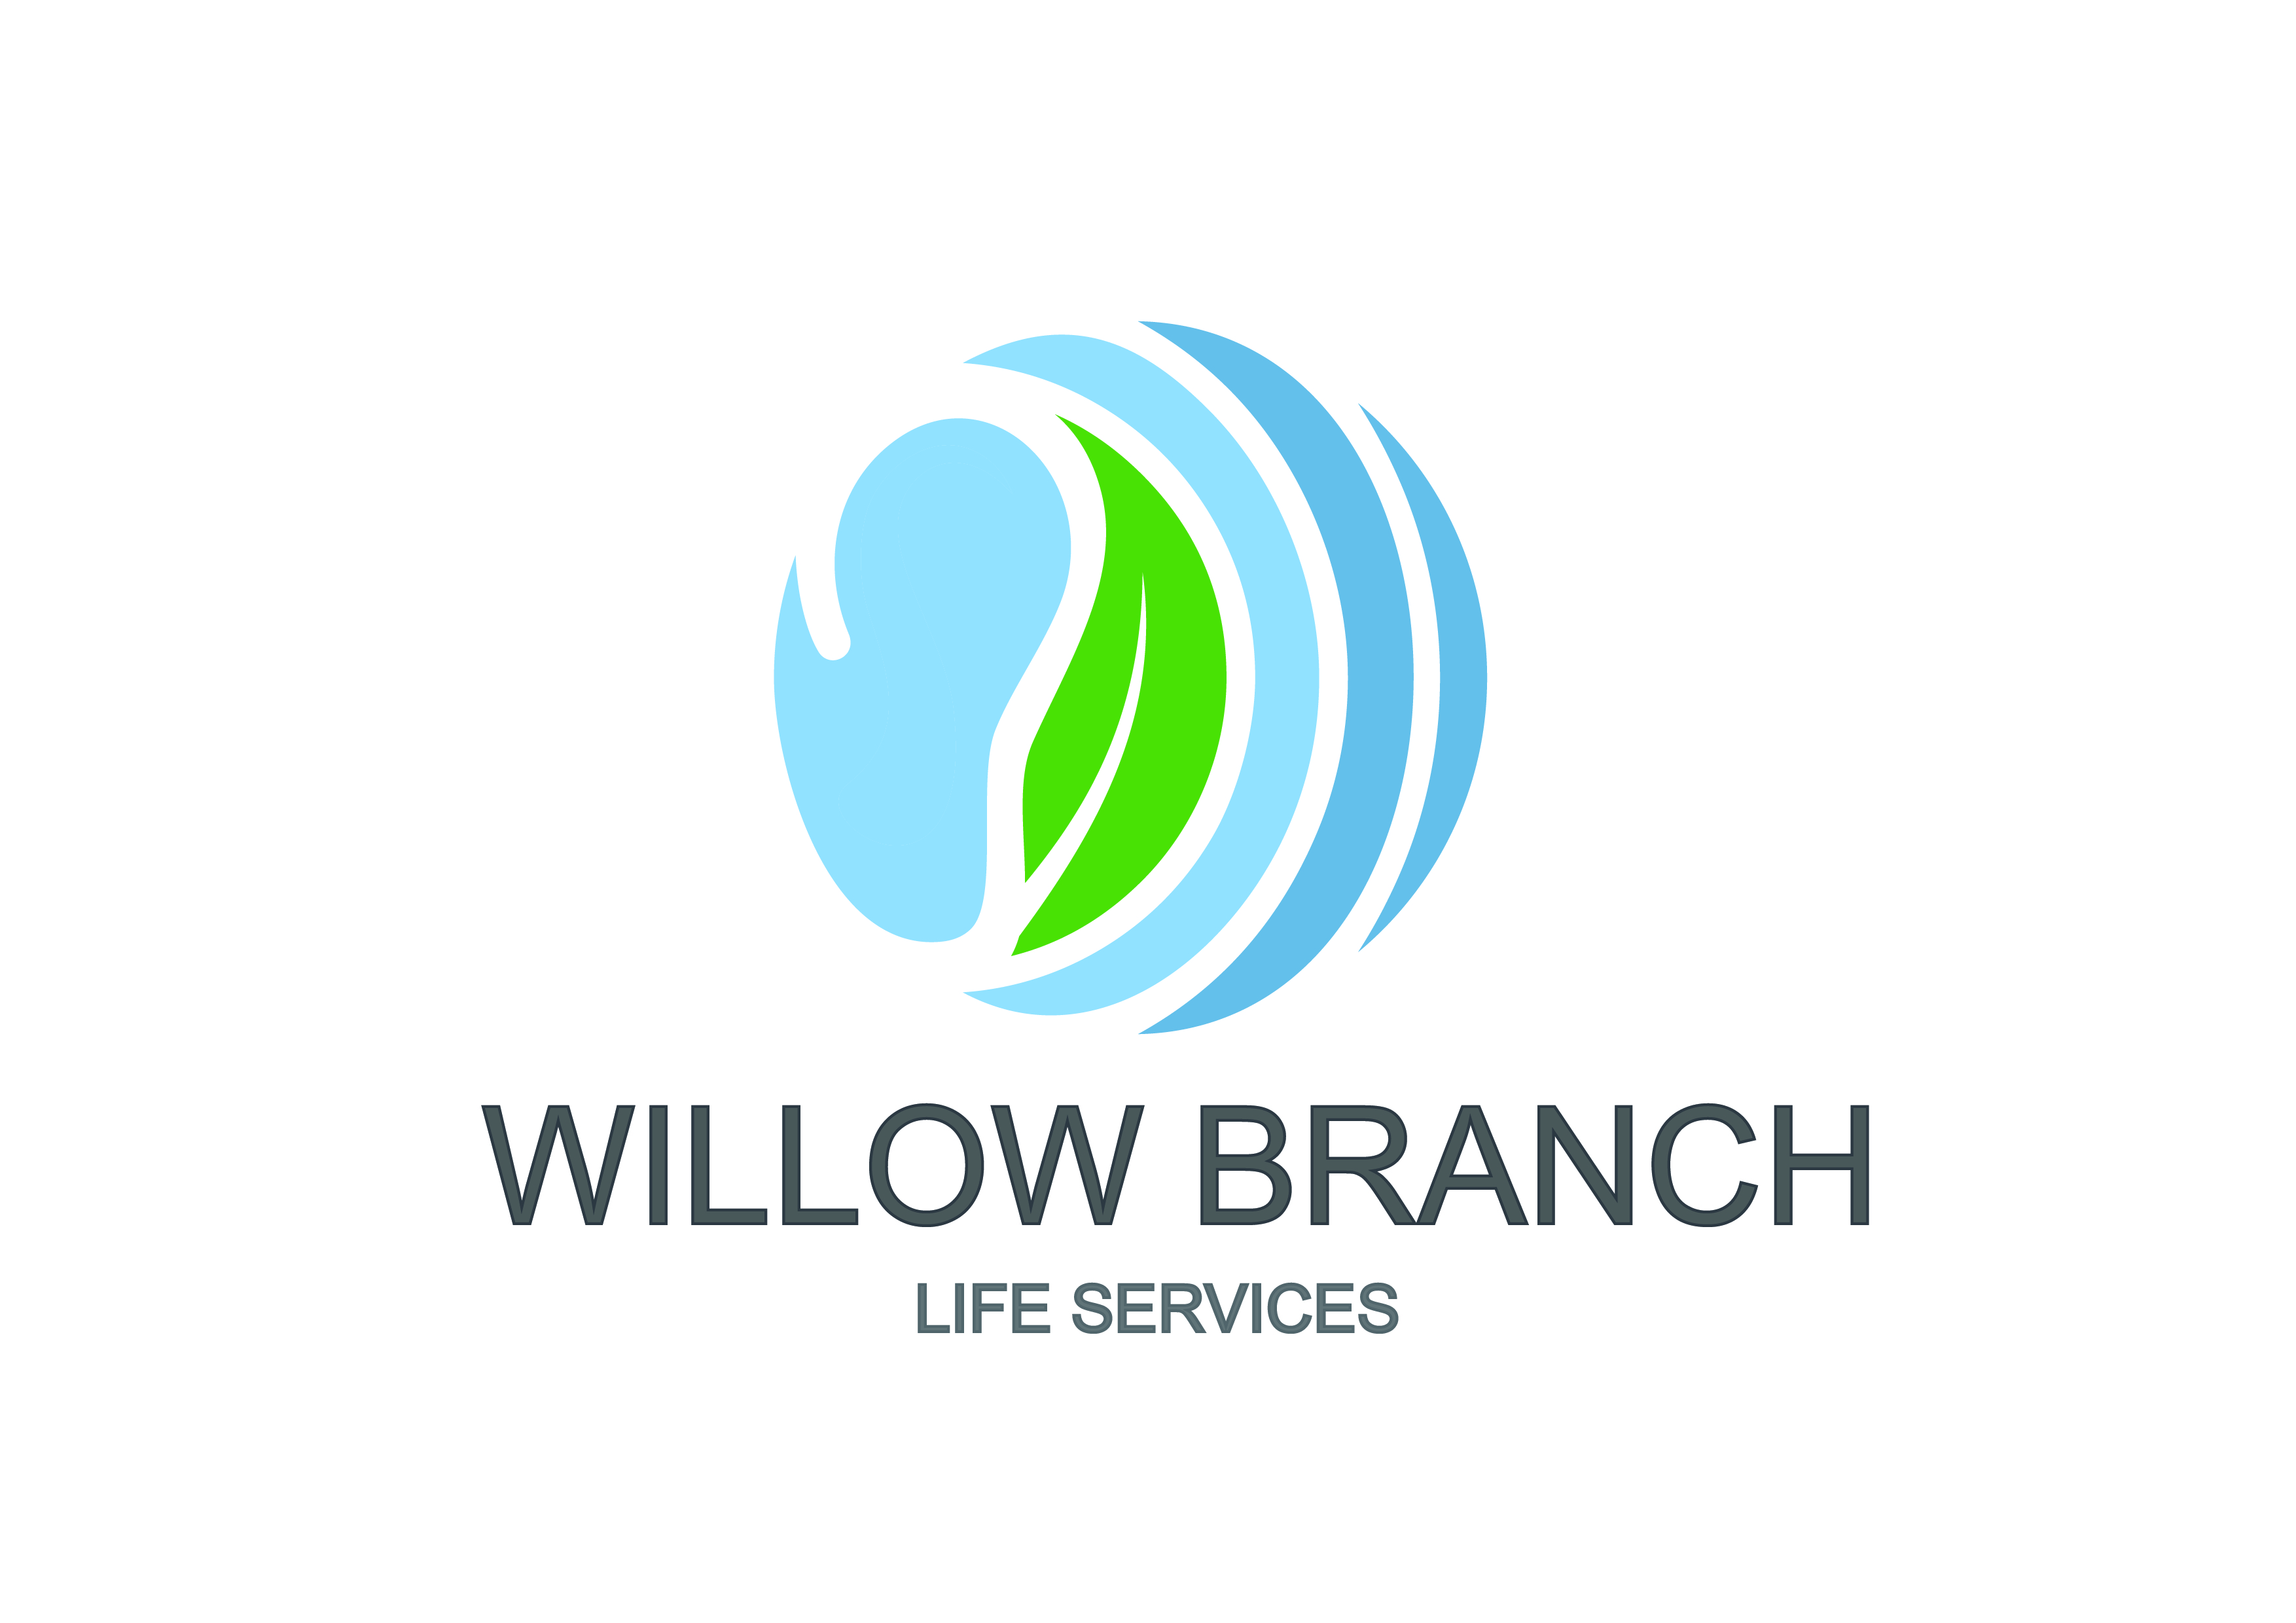 Logo Design by Anum Aamir - Entry No. 160 in the Logo Design Contest Artistic Logo Design for Willow Branch Life Service.